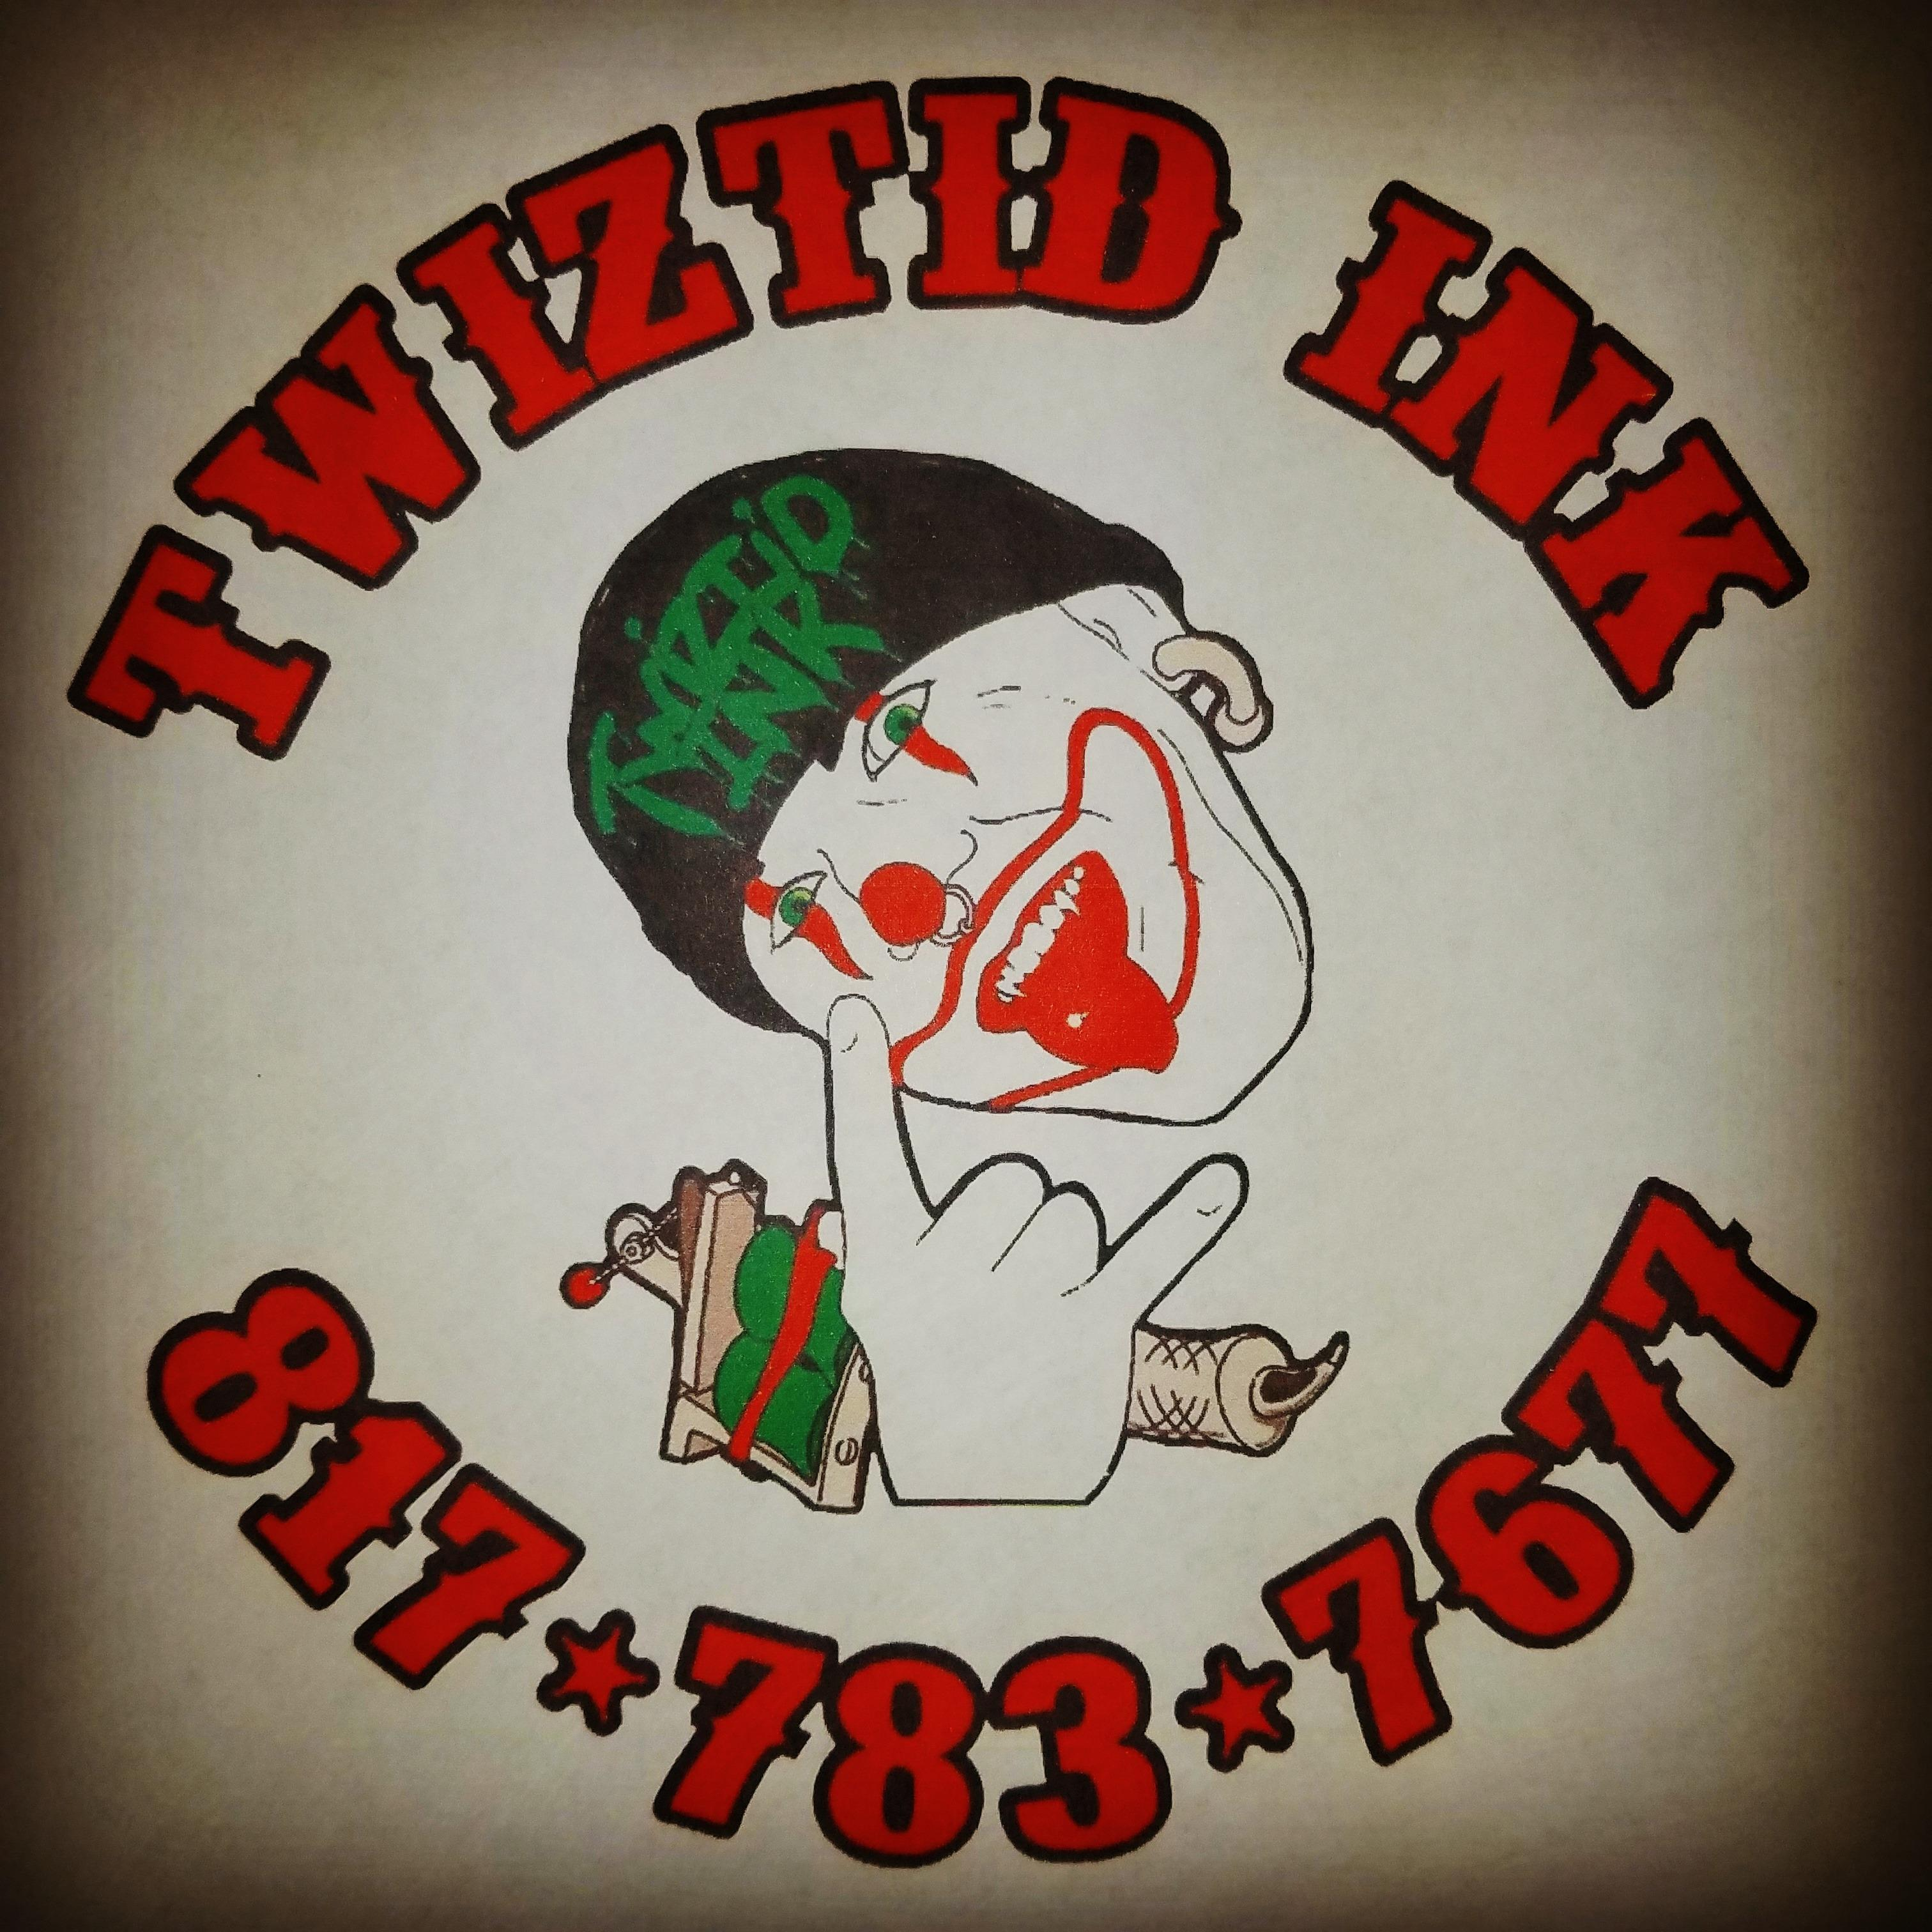 Twiztid ink tattoos and piercings coupons near me in for Tattoo deals near me